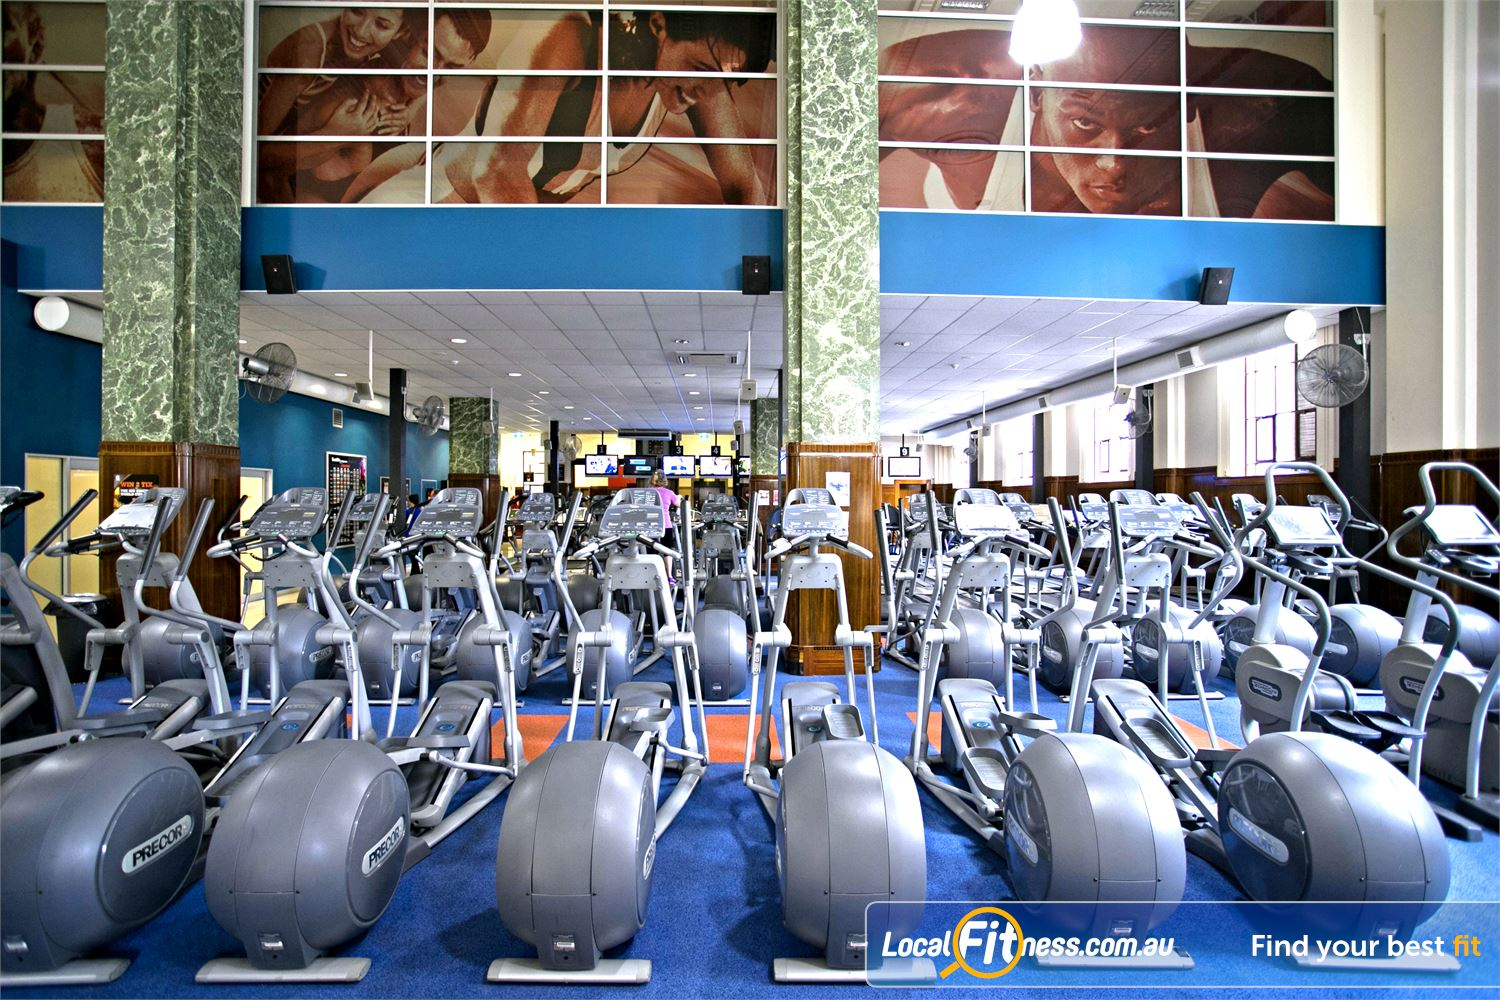 Goodlife Health Clubs Adelaide City Adelaide Rows of cardio machines so you don't have to wait.